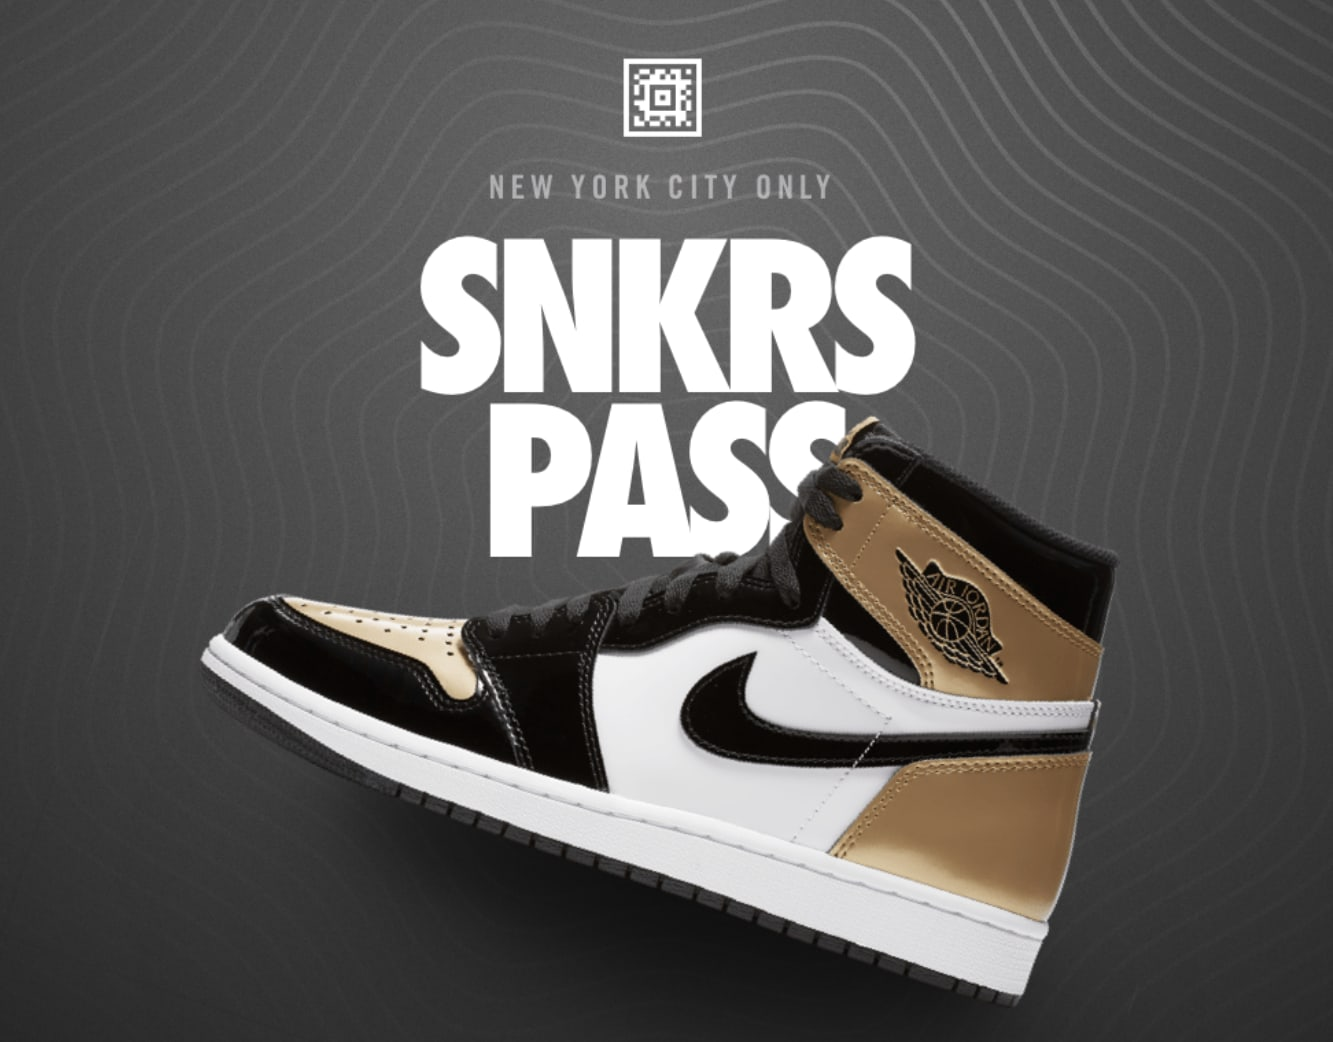 Air Jordan 1 'NRG' Nike SNKRS Pass